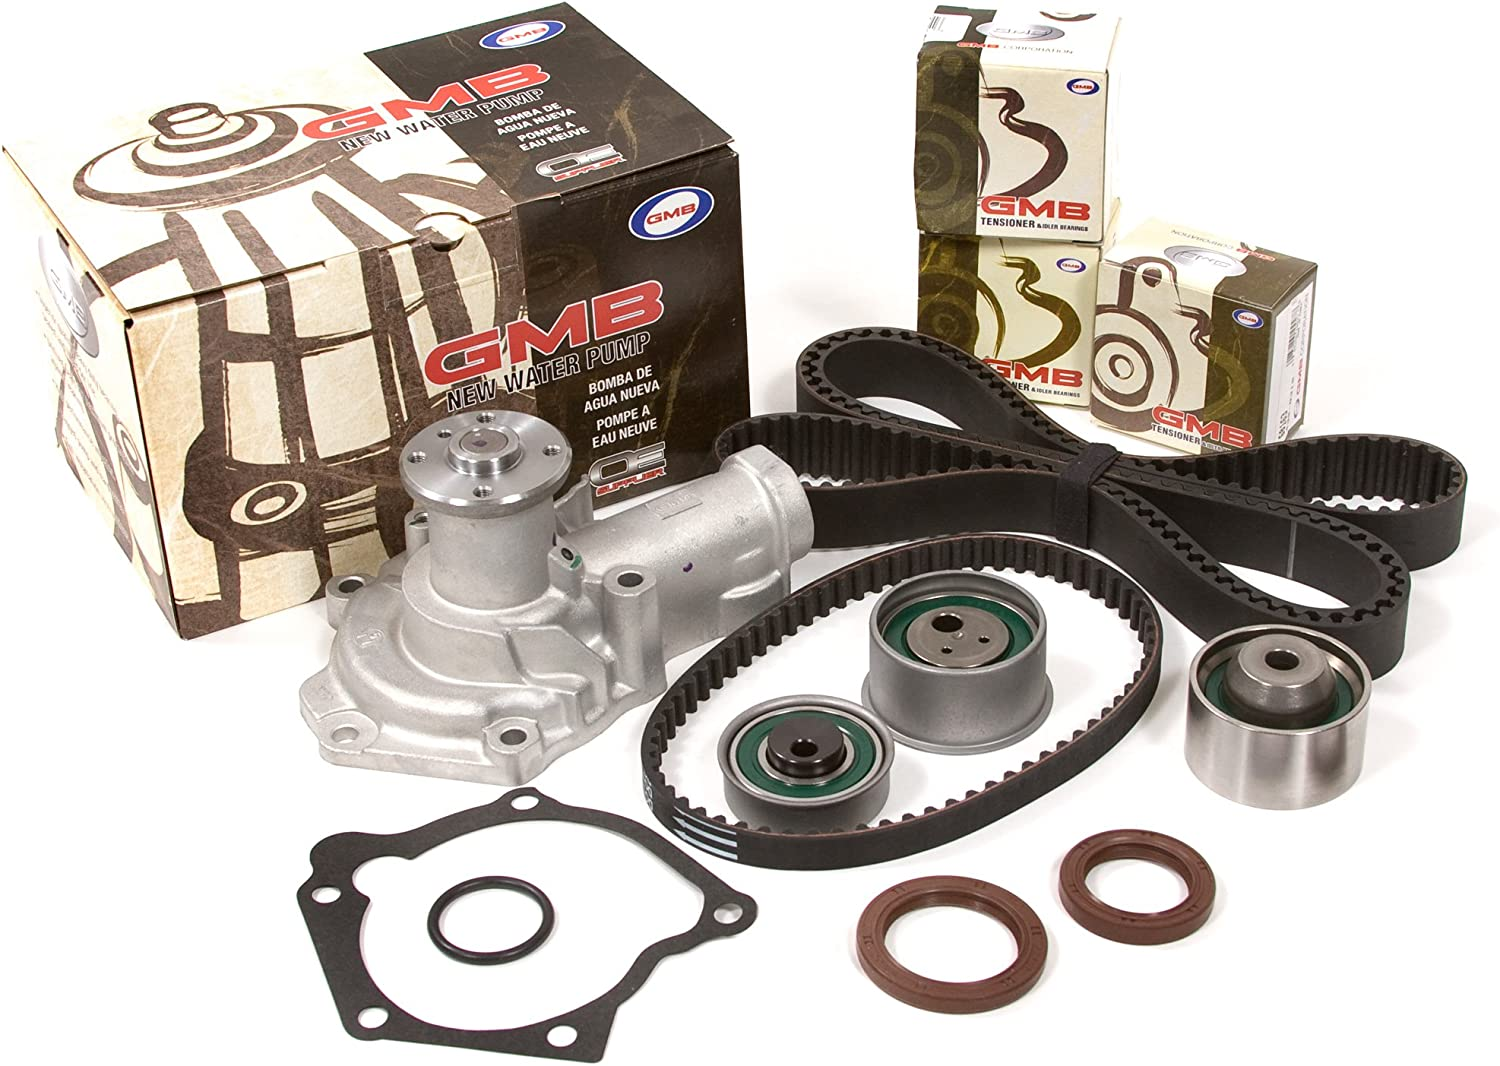 Evergreen TBK232WP2 Compatible With Direct stock discount Oakland Mall Eclipse Galant Mitsubishi 2.